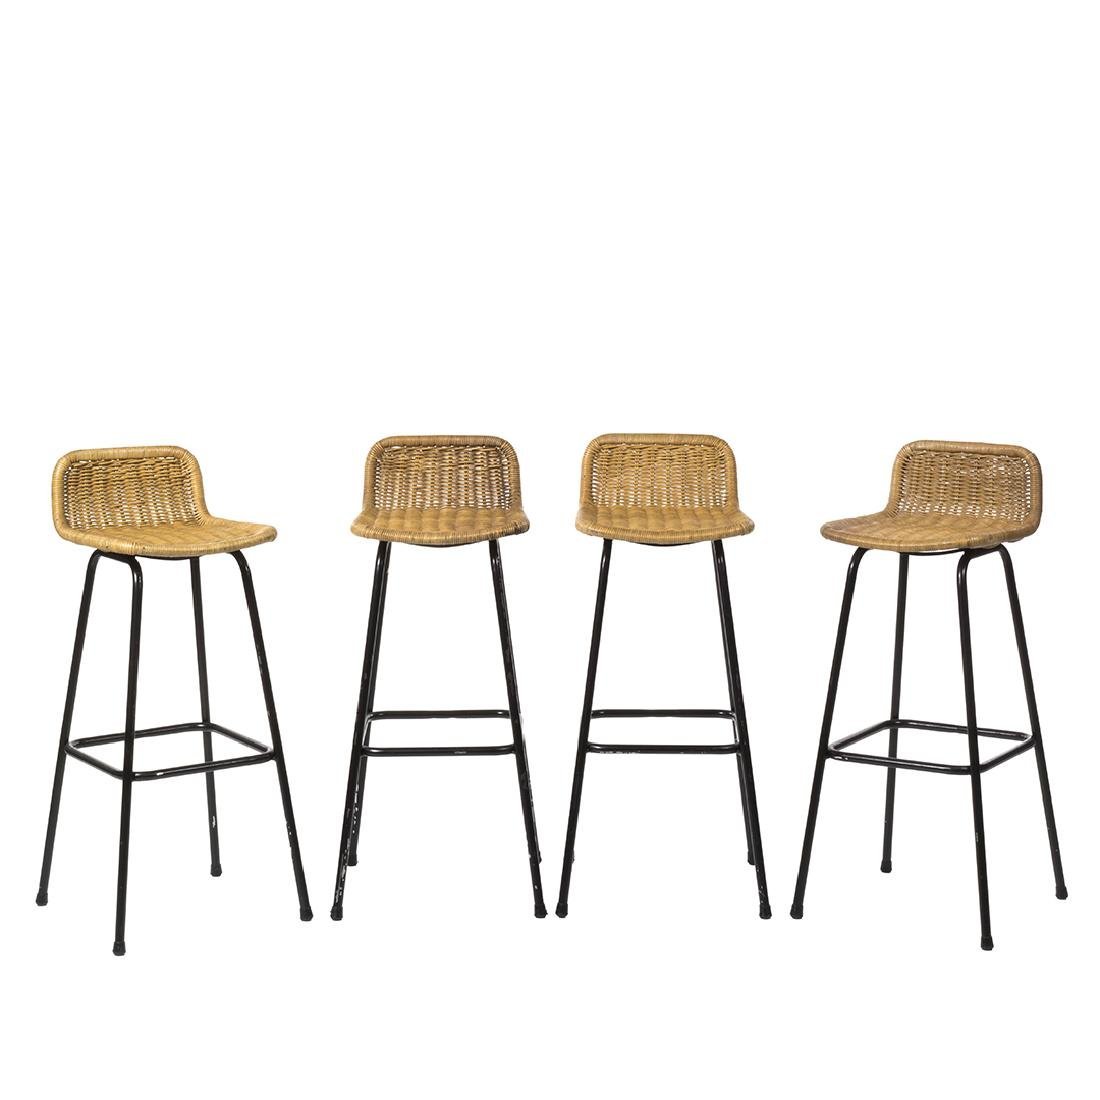 Charlotte Perriand Style Stools (4)